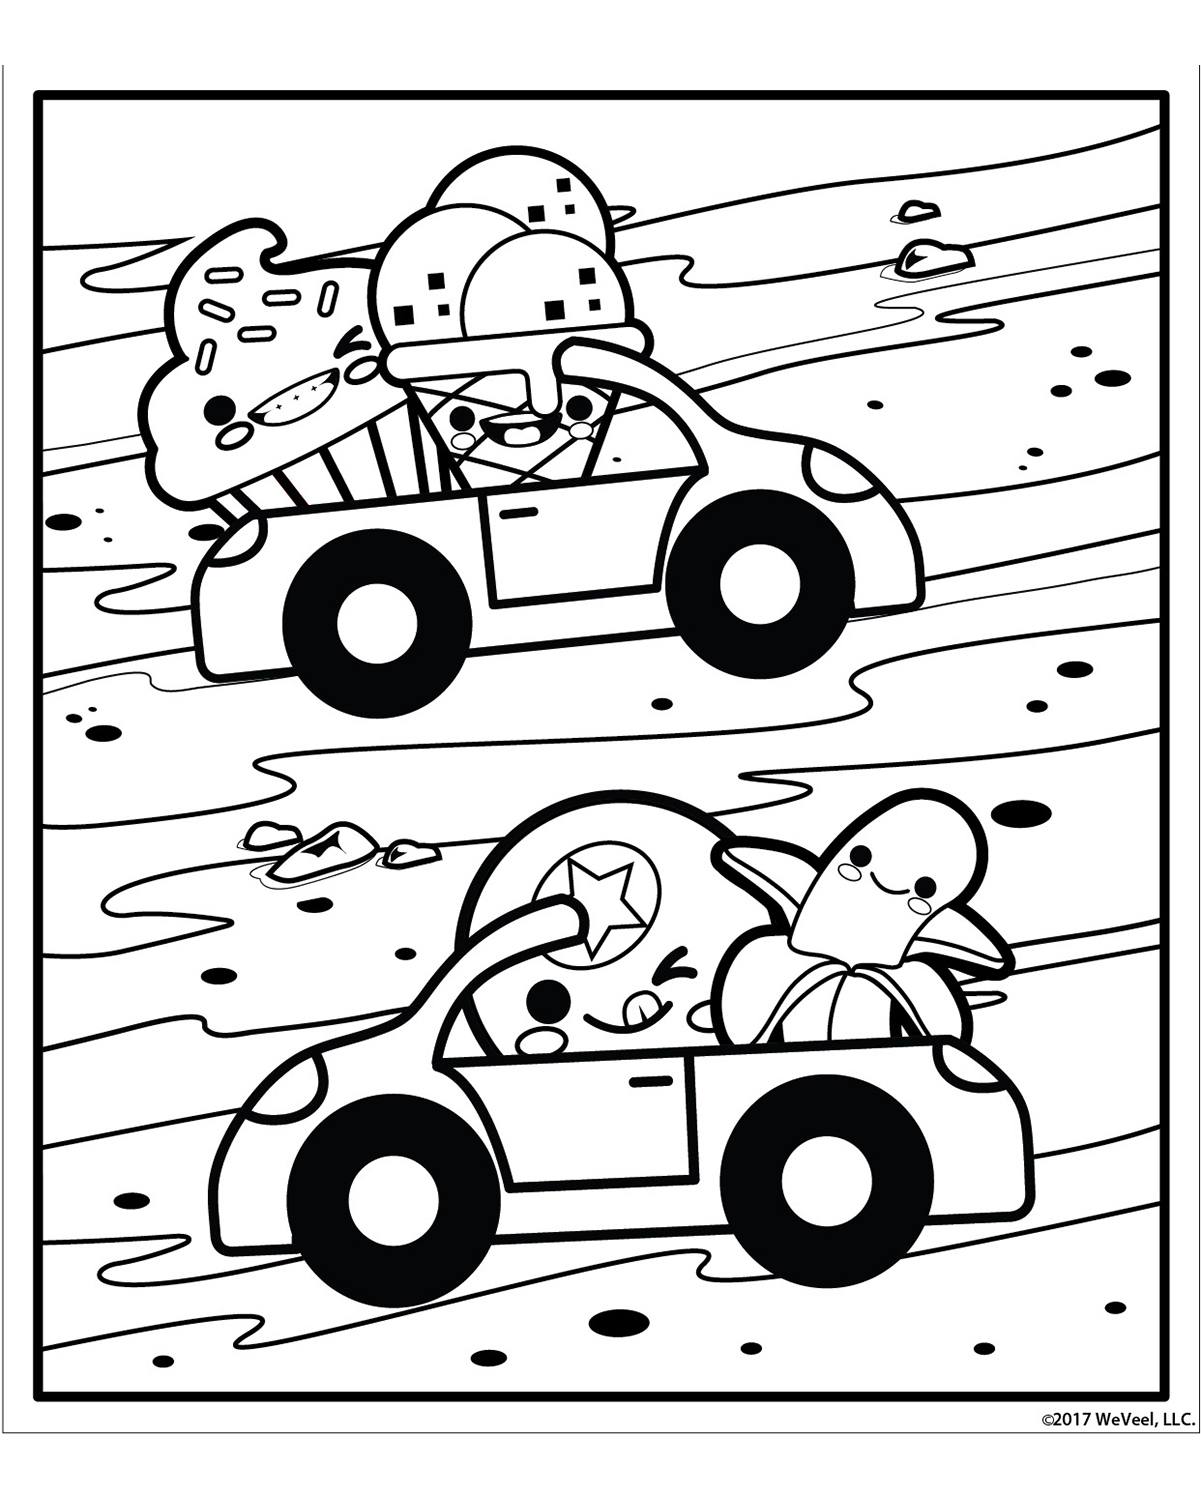 sugar rush coloring pages - photo#12